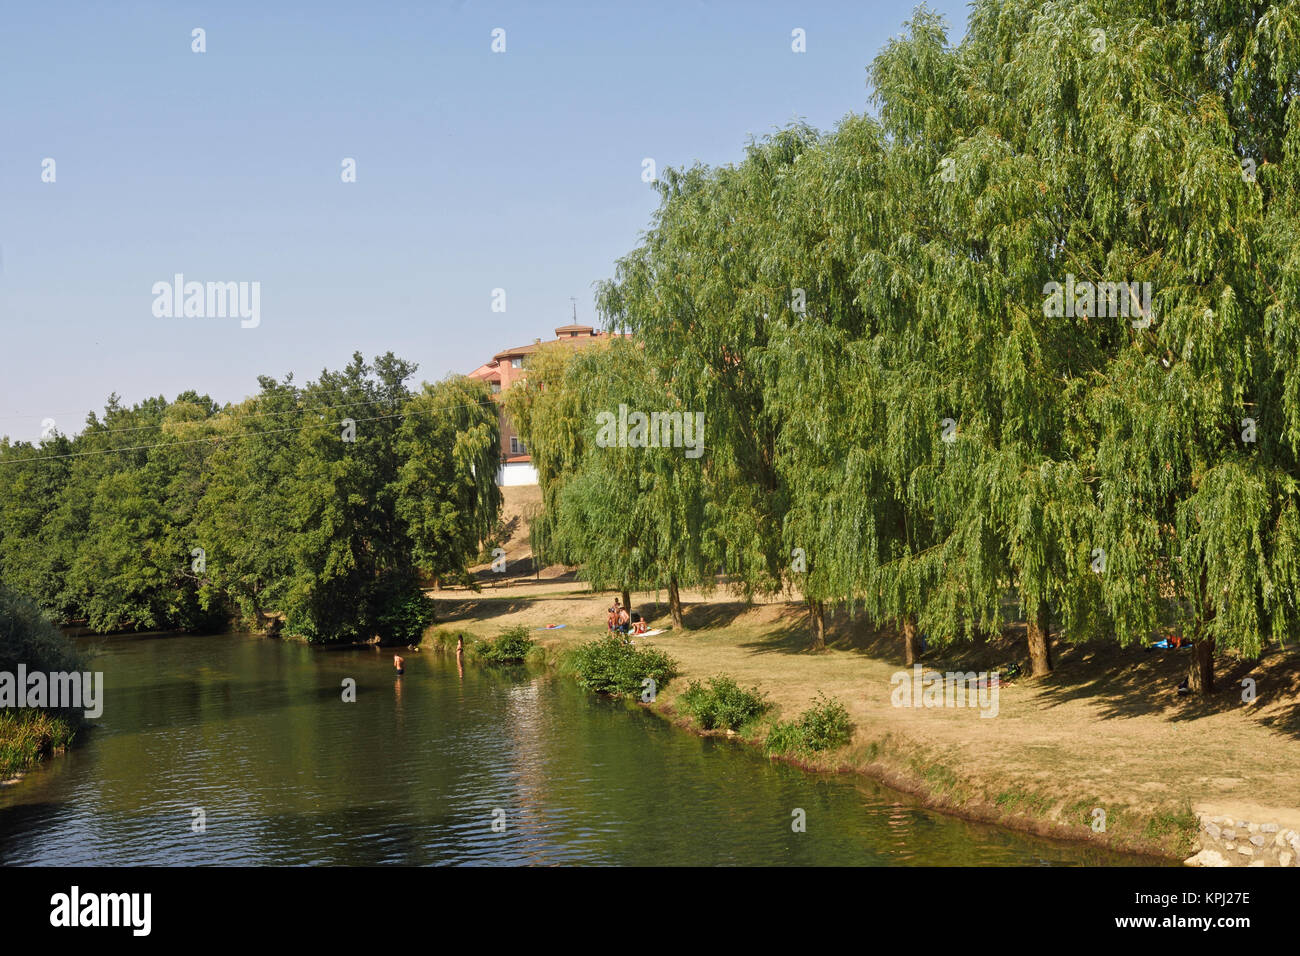 the river Carrion in its passage by Carrion of the Condes, Palencia province, Spain - Stock Image